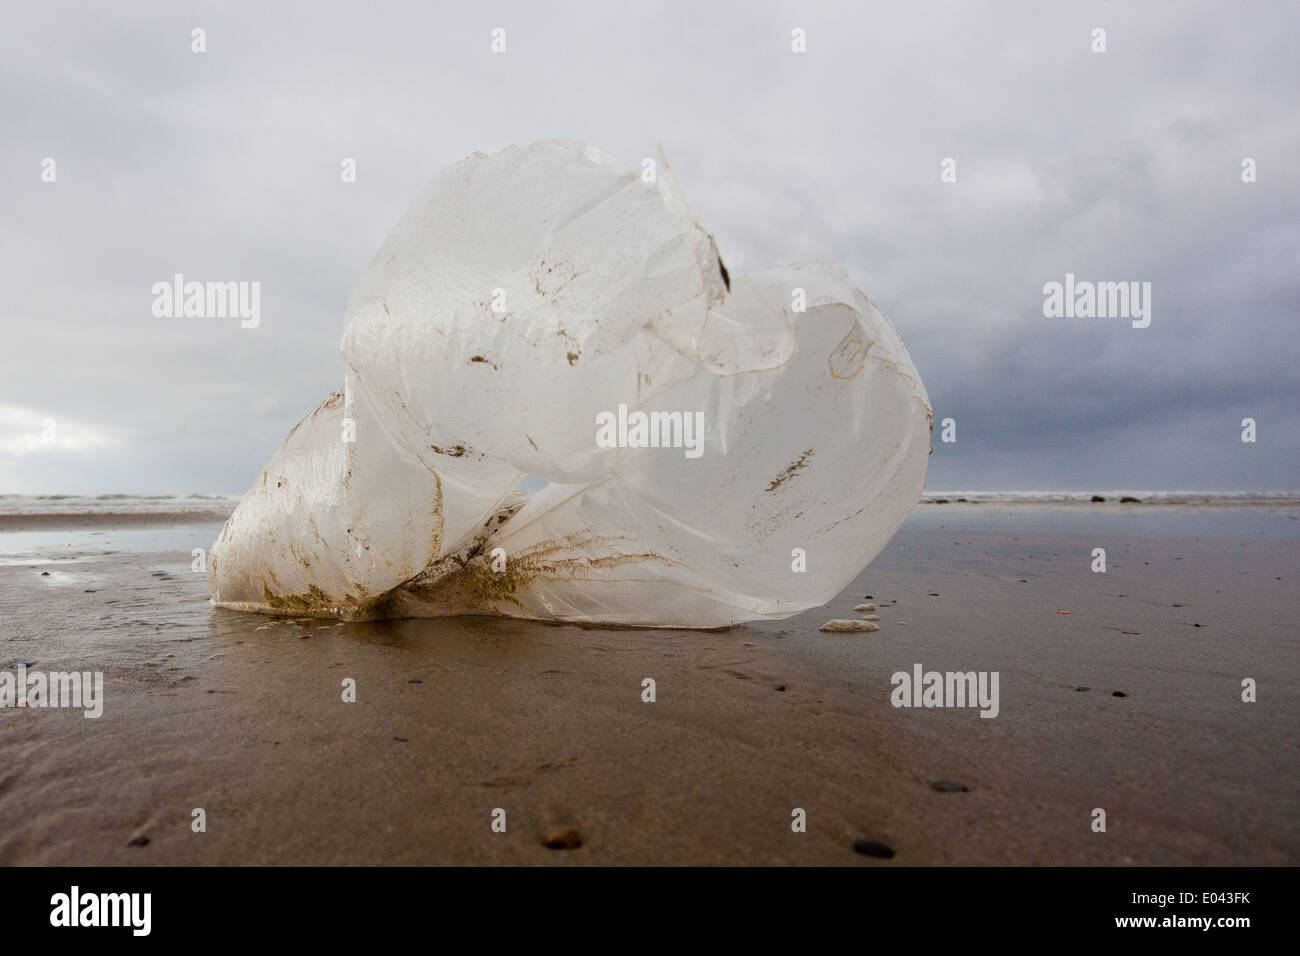 A plastic bag blows in the wind on the beach at Saltburn. These bags take ages to brack down in the sea, whilst remaining a hazard to marine wildlife. - Stock Image